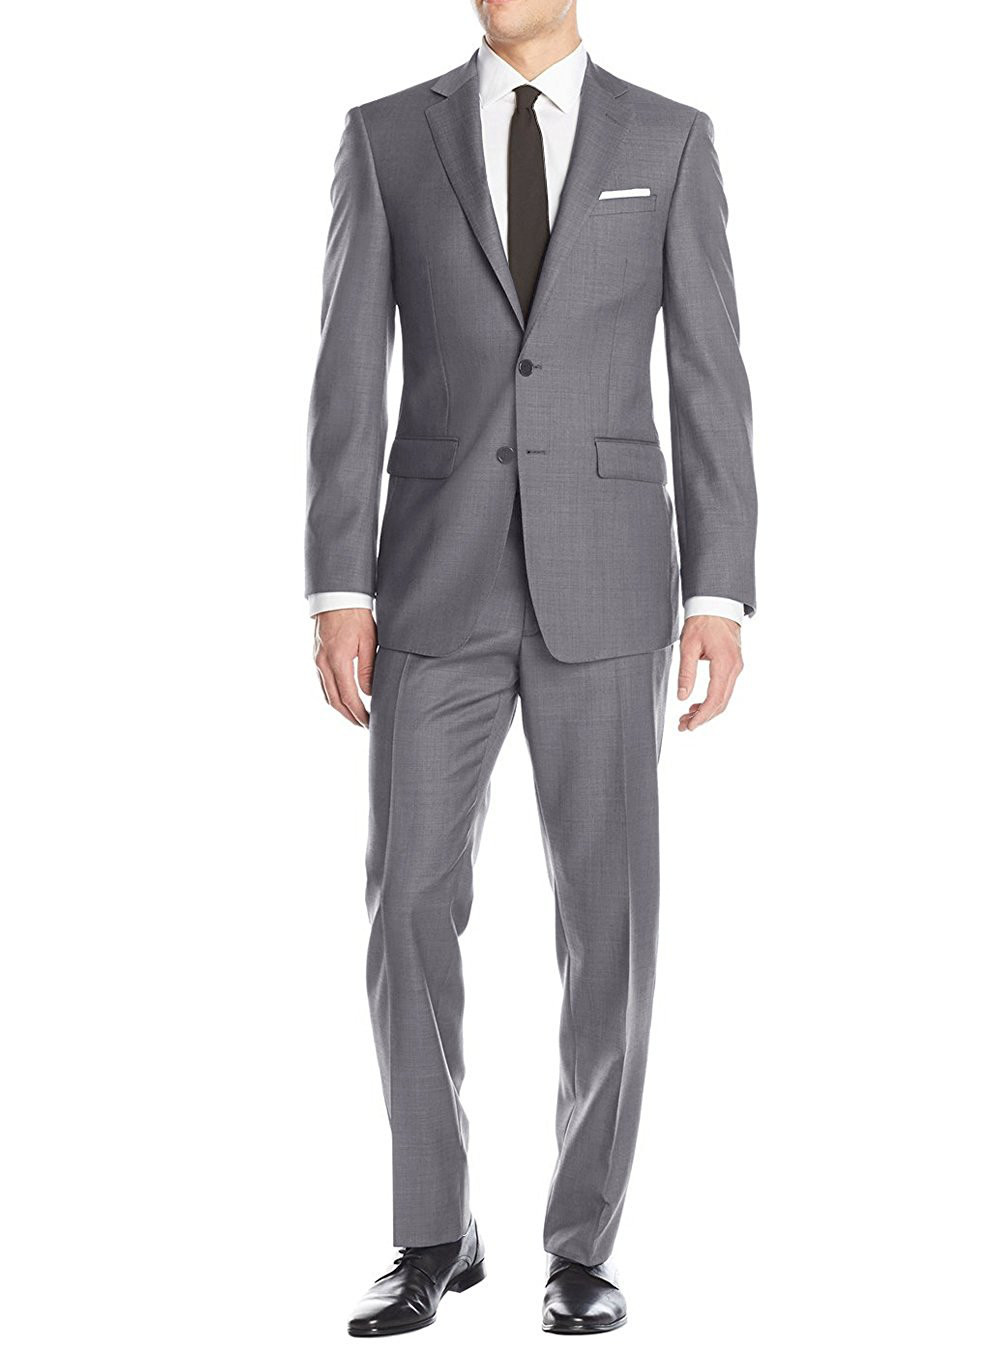 Mens Charcoal Modern Fit Suits By Luciano Natazzi